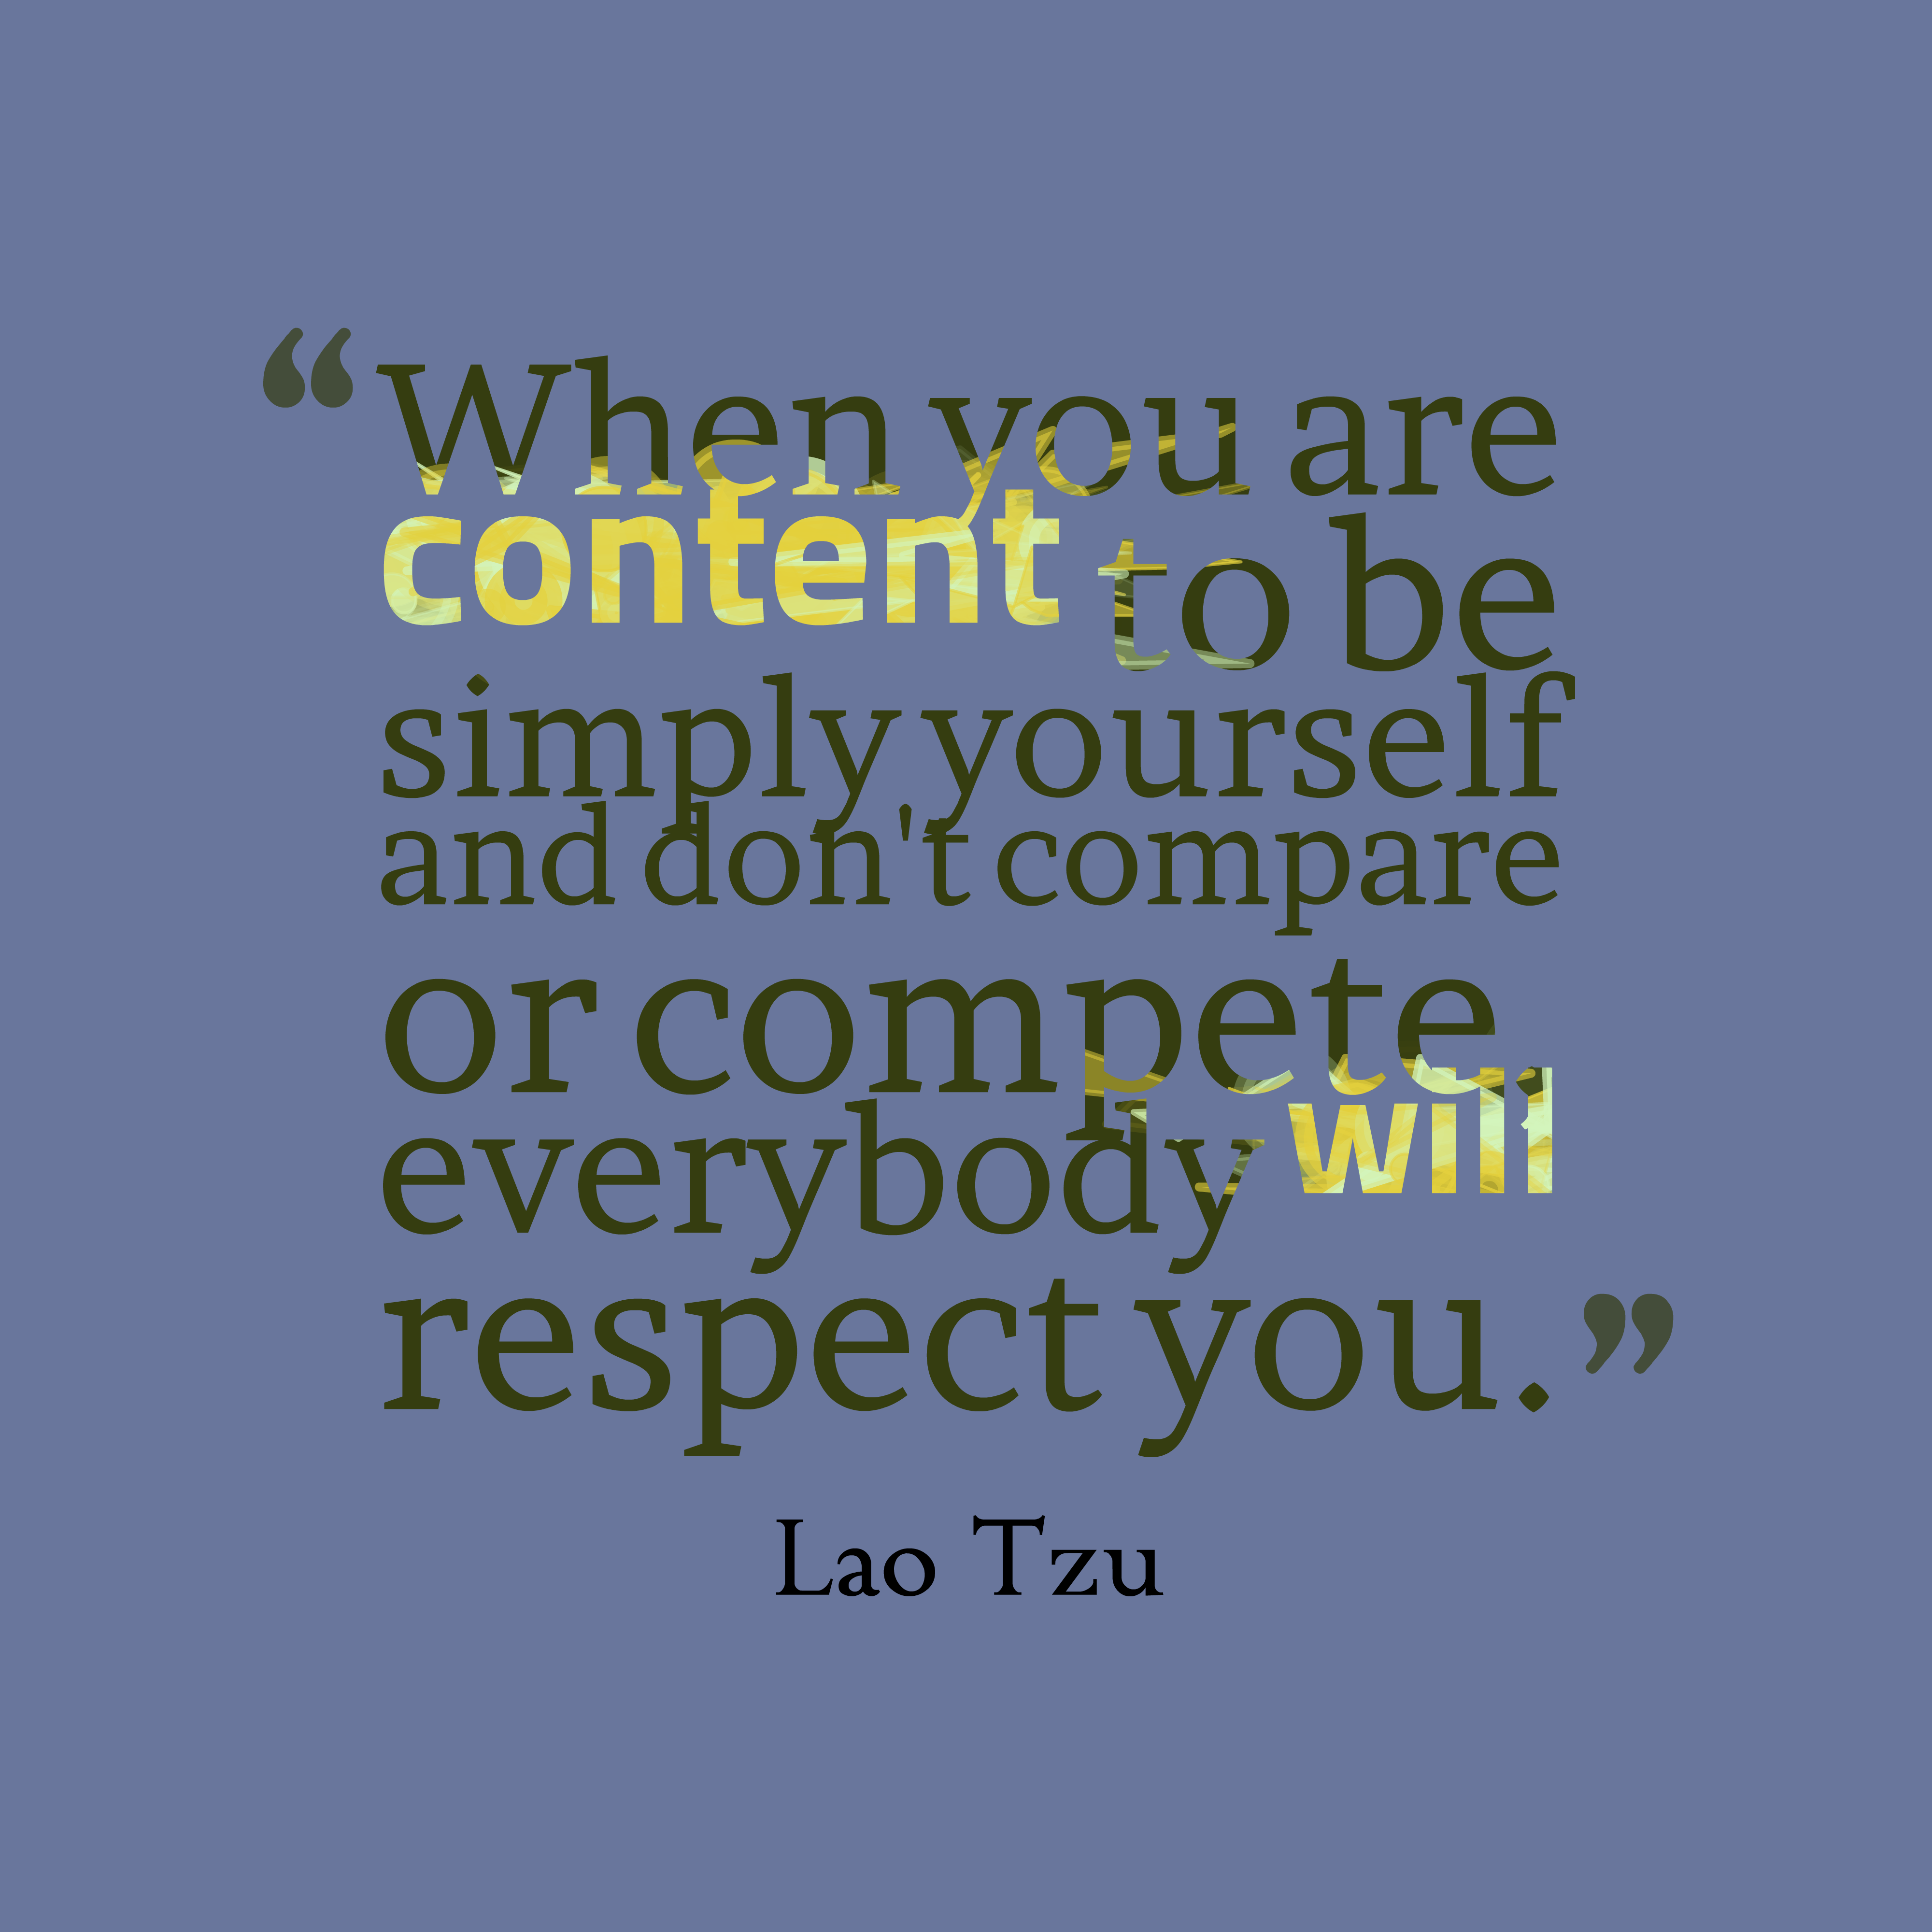 Lao Tzu Quote About Respect